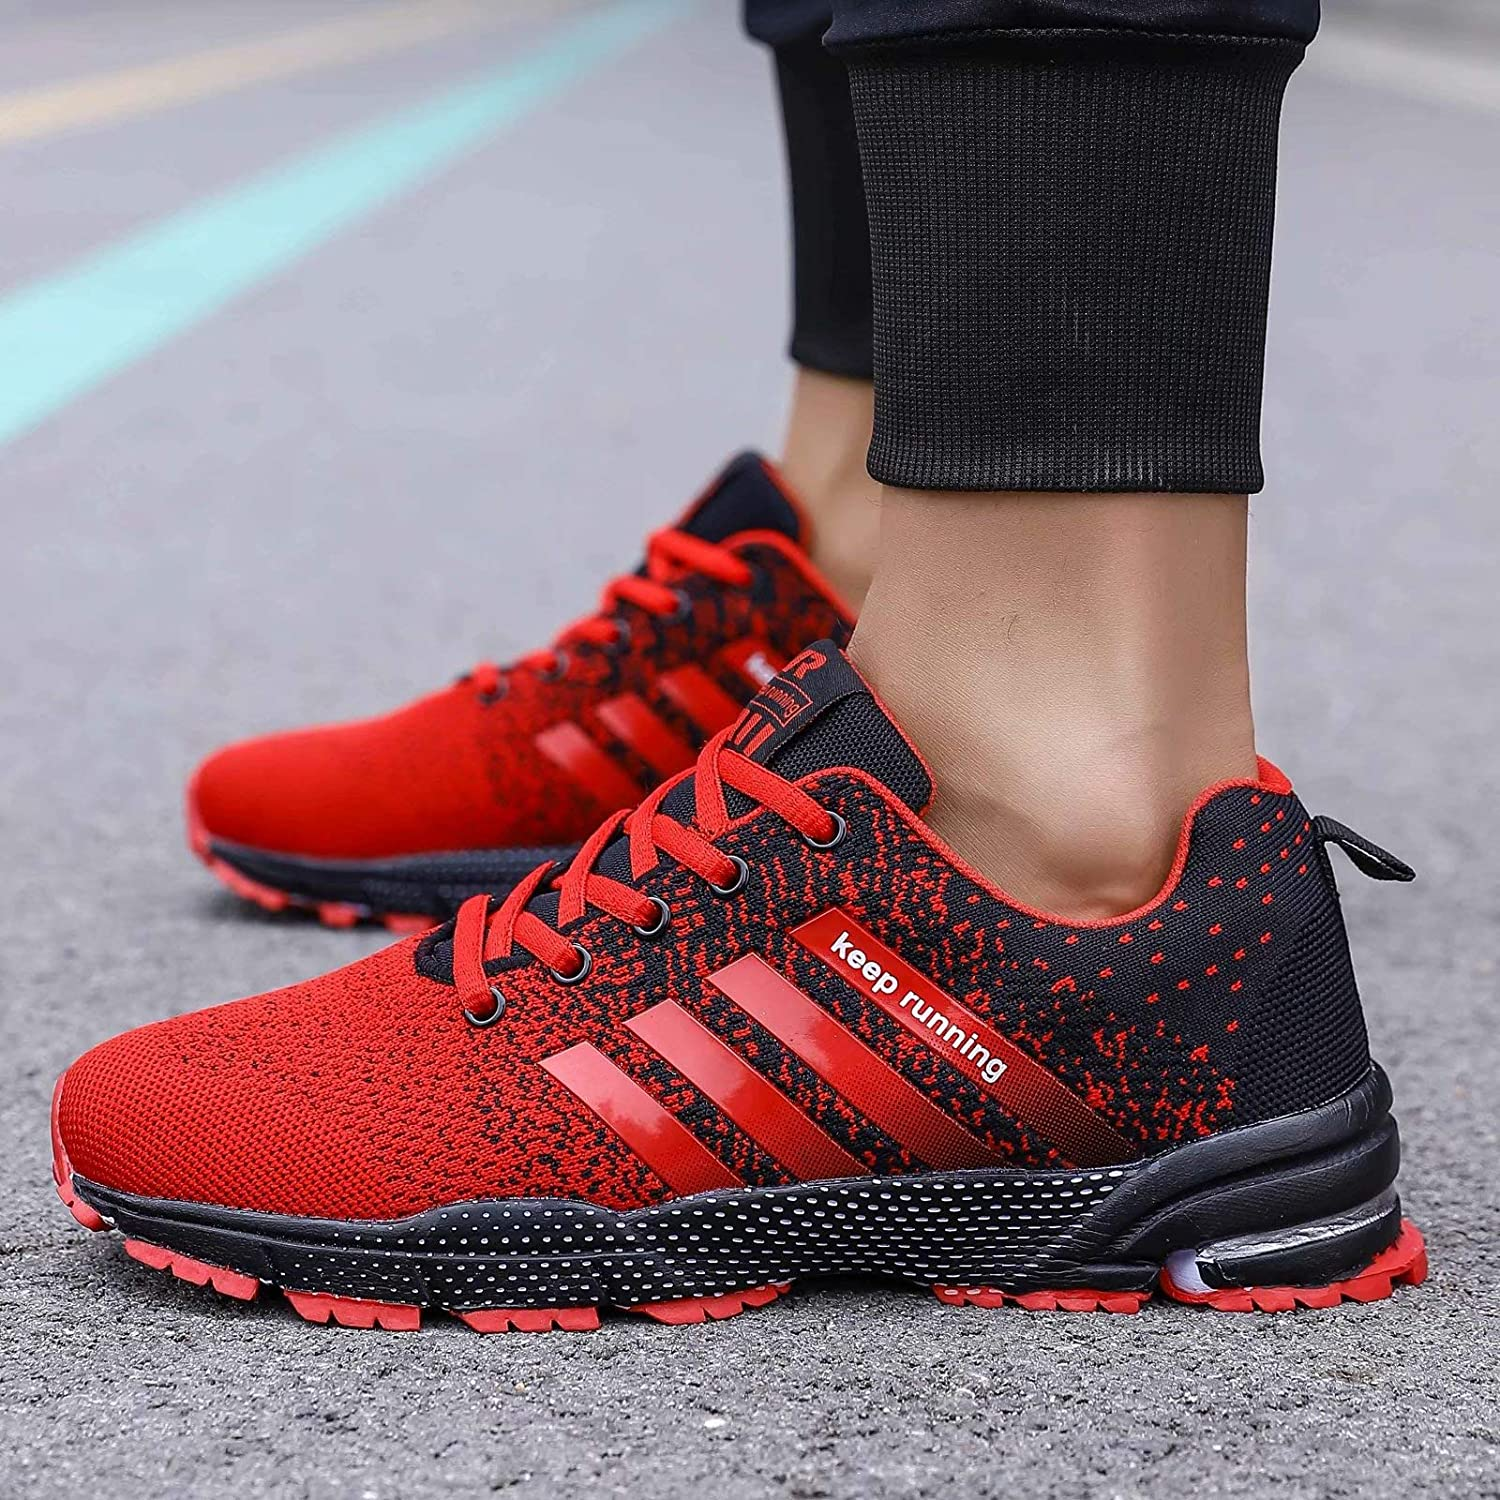 GSLMOLN Running Shoes Mens Womens Road Slip on Cool Comfortable Light Best Keep Athletic SportIndoor Outdoor Gym Tennis Sneaker